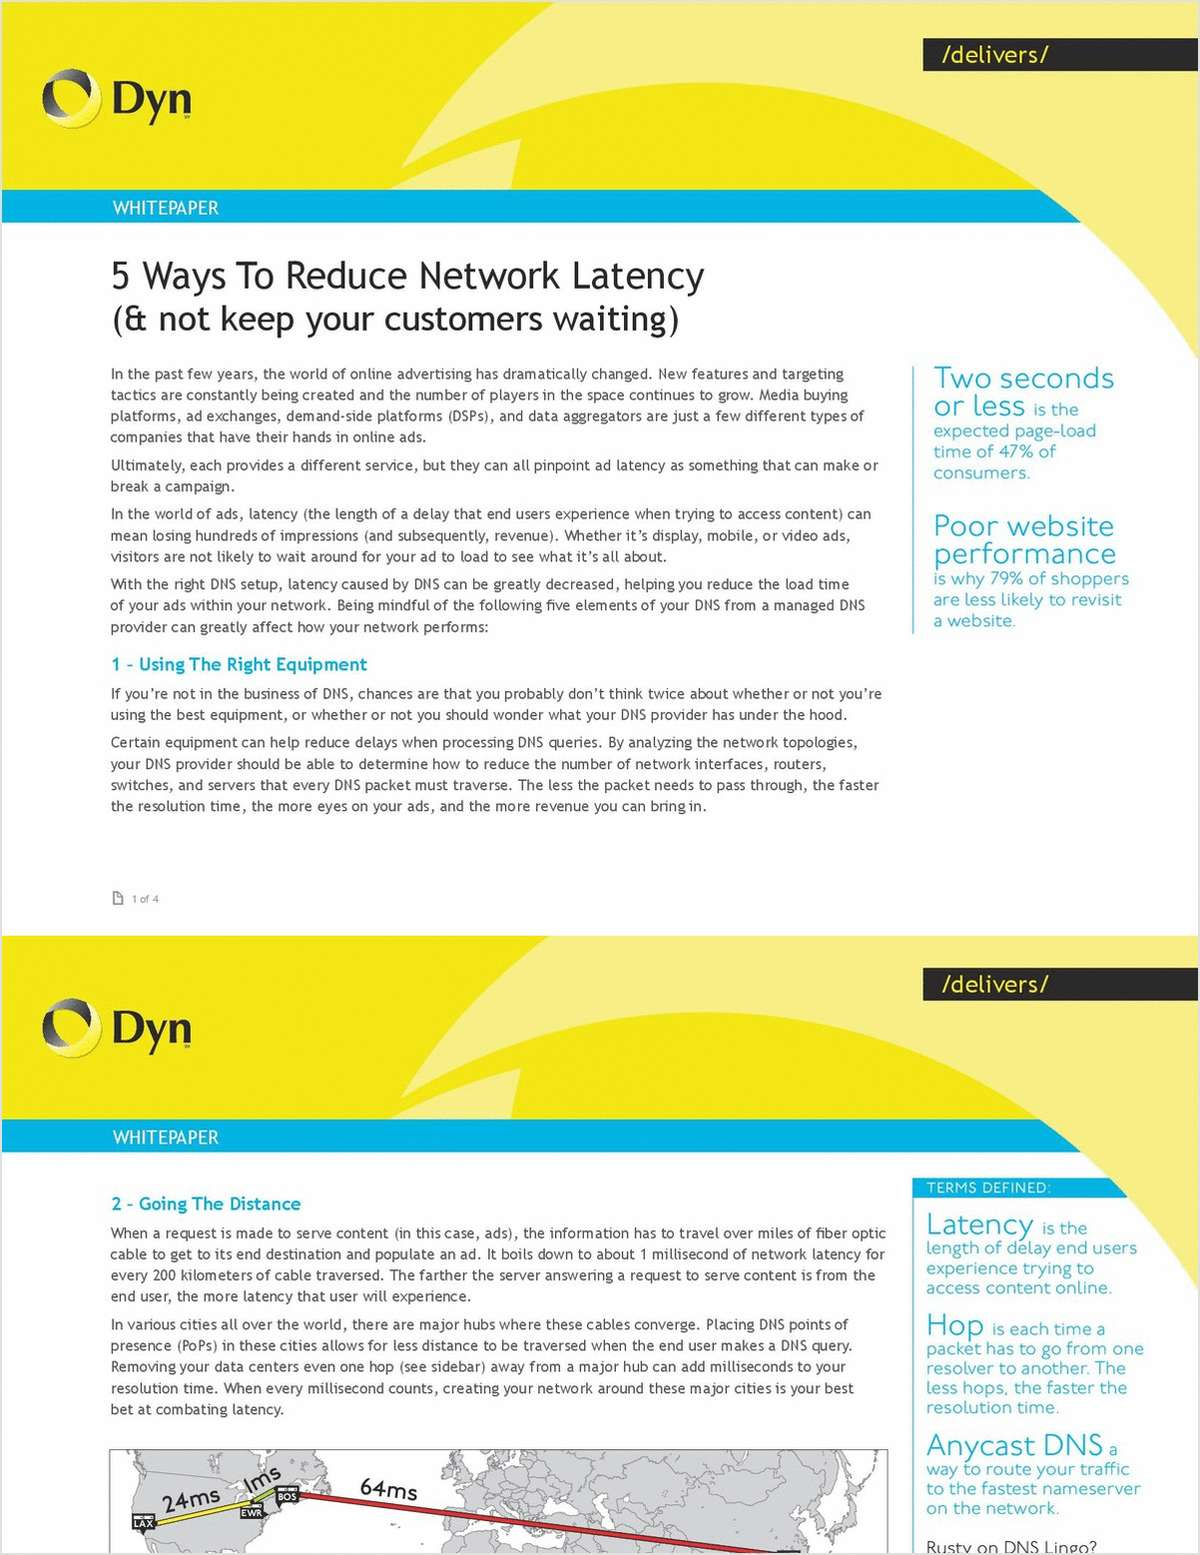 5 Ways to Reduce Advertising Network Latency (and not keep your customers waiting)